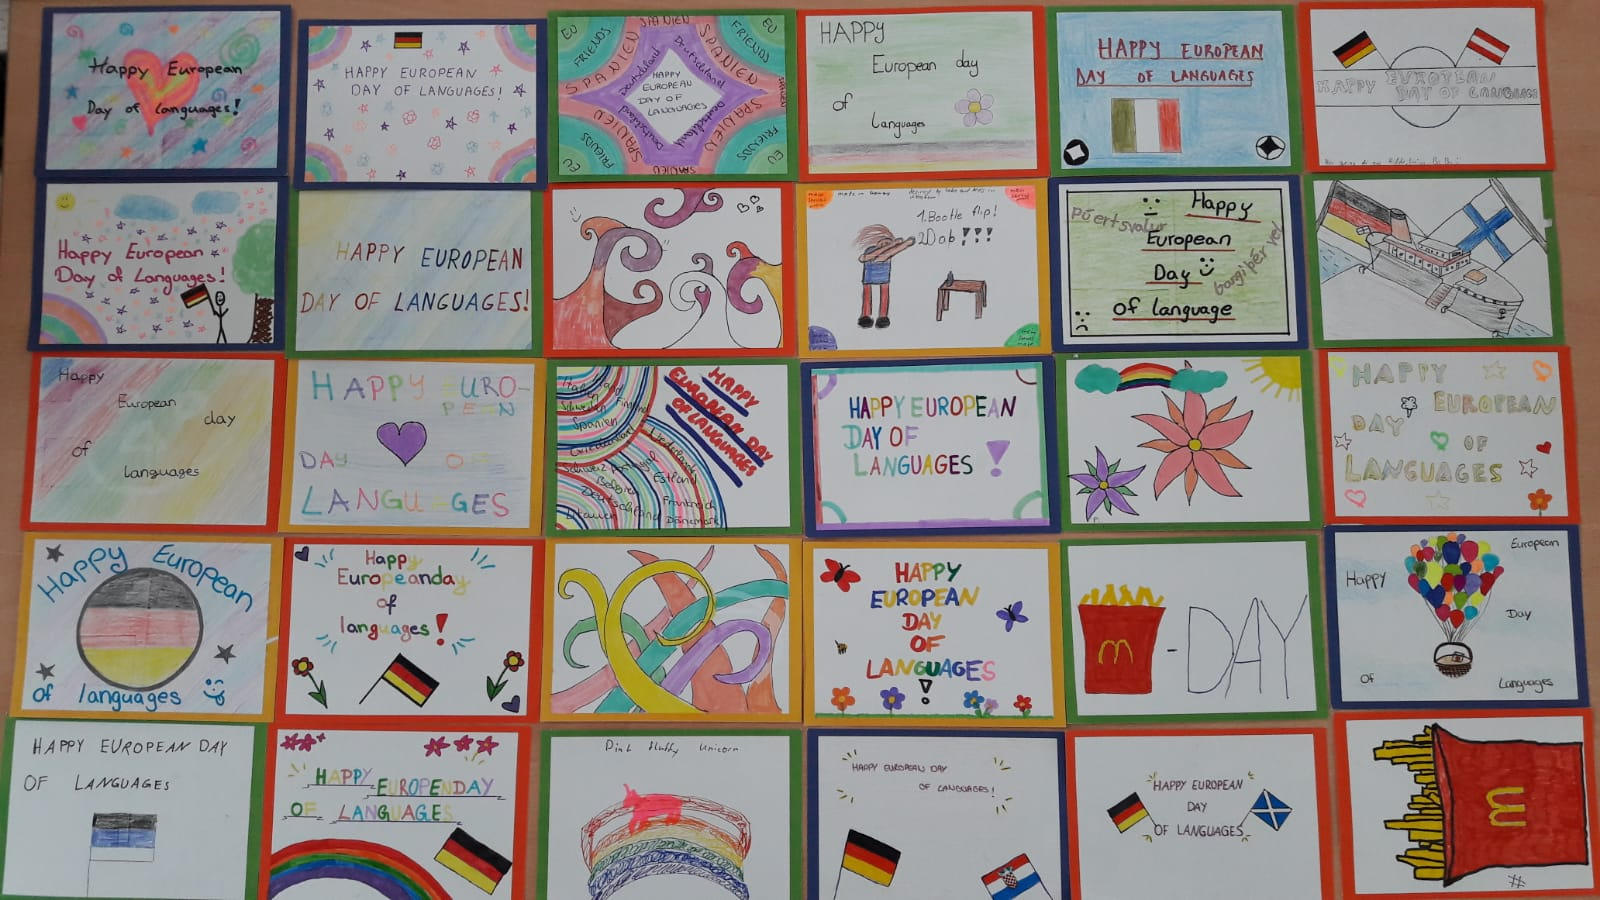 European Day of Languages 1